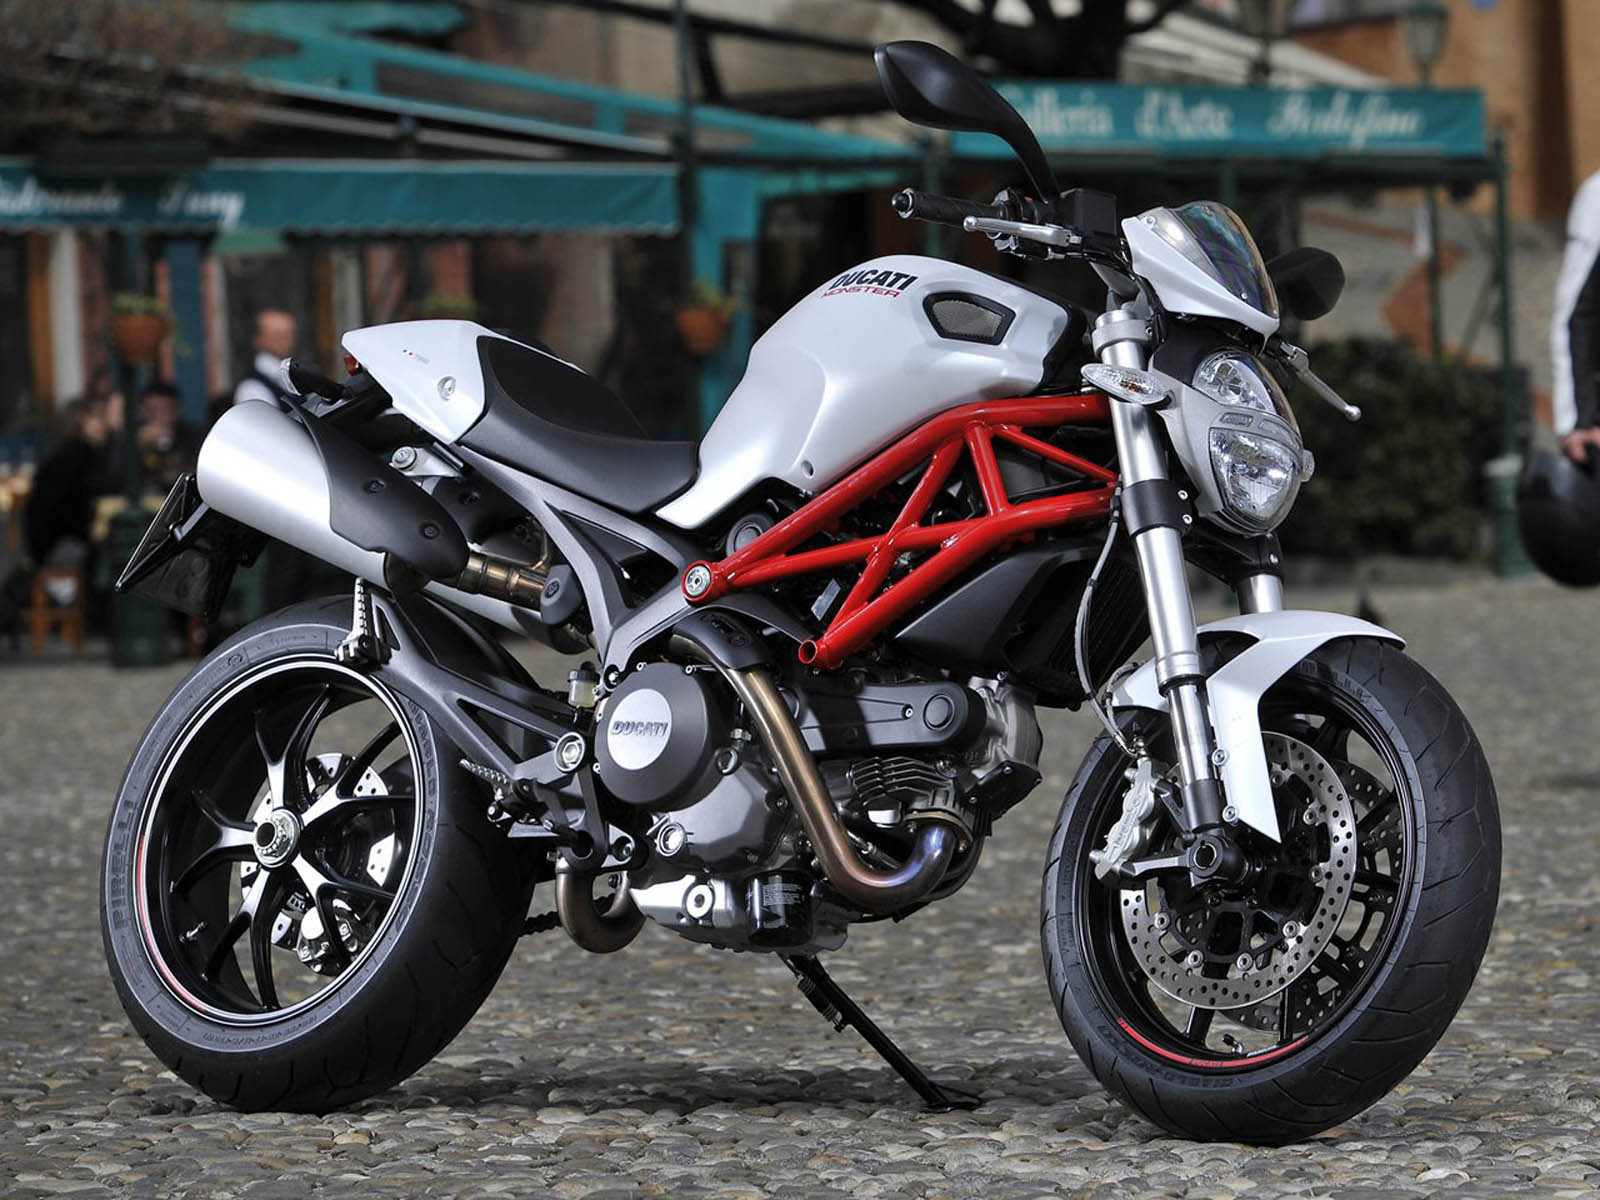 ducati monster 796 bike wallpapers. Black Bedroom Furniture Sets. Home Design Ideas